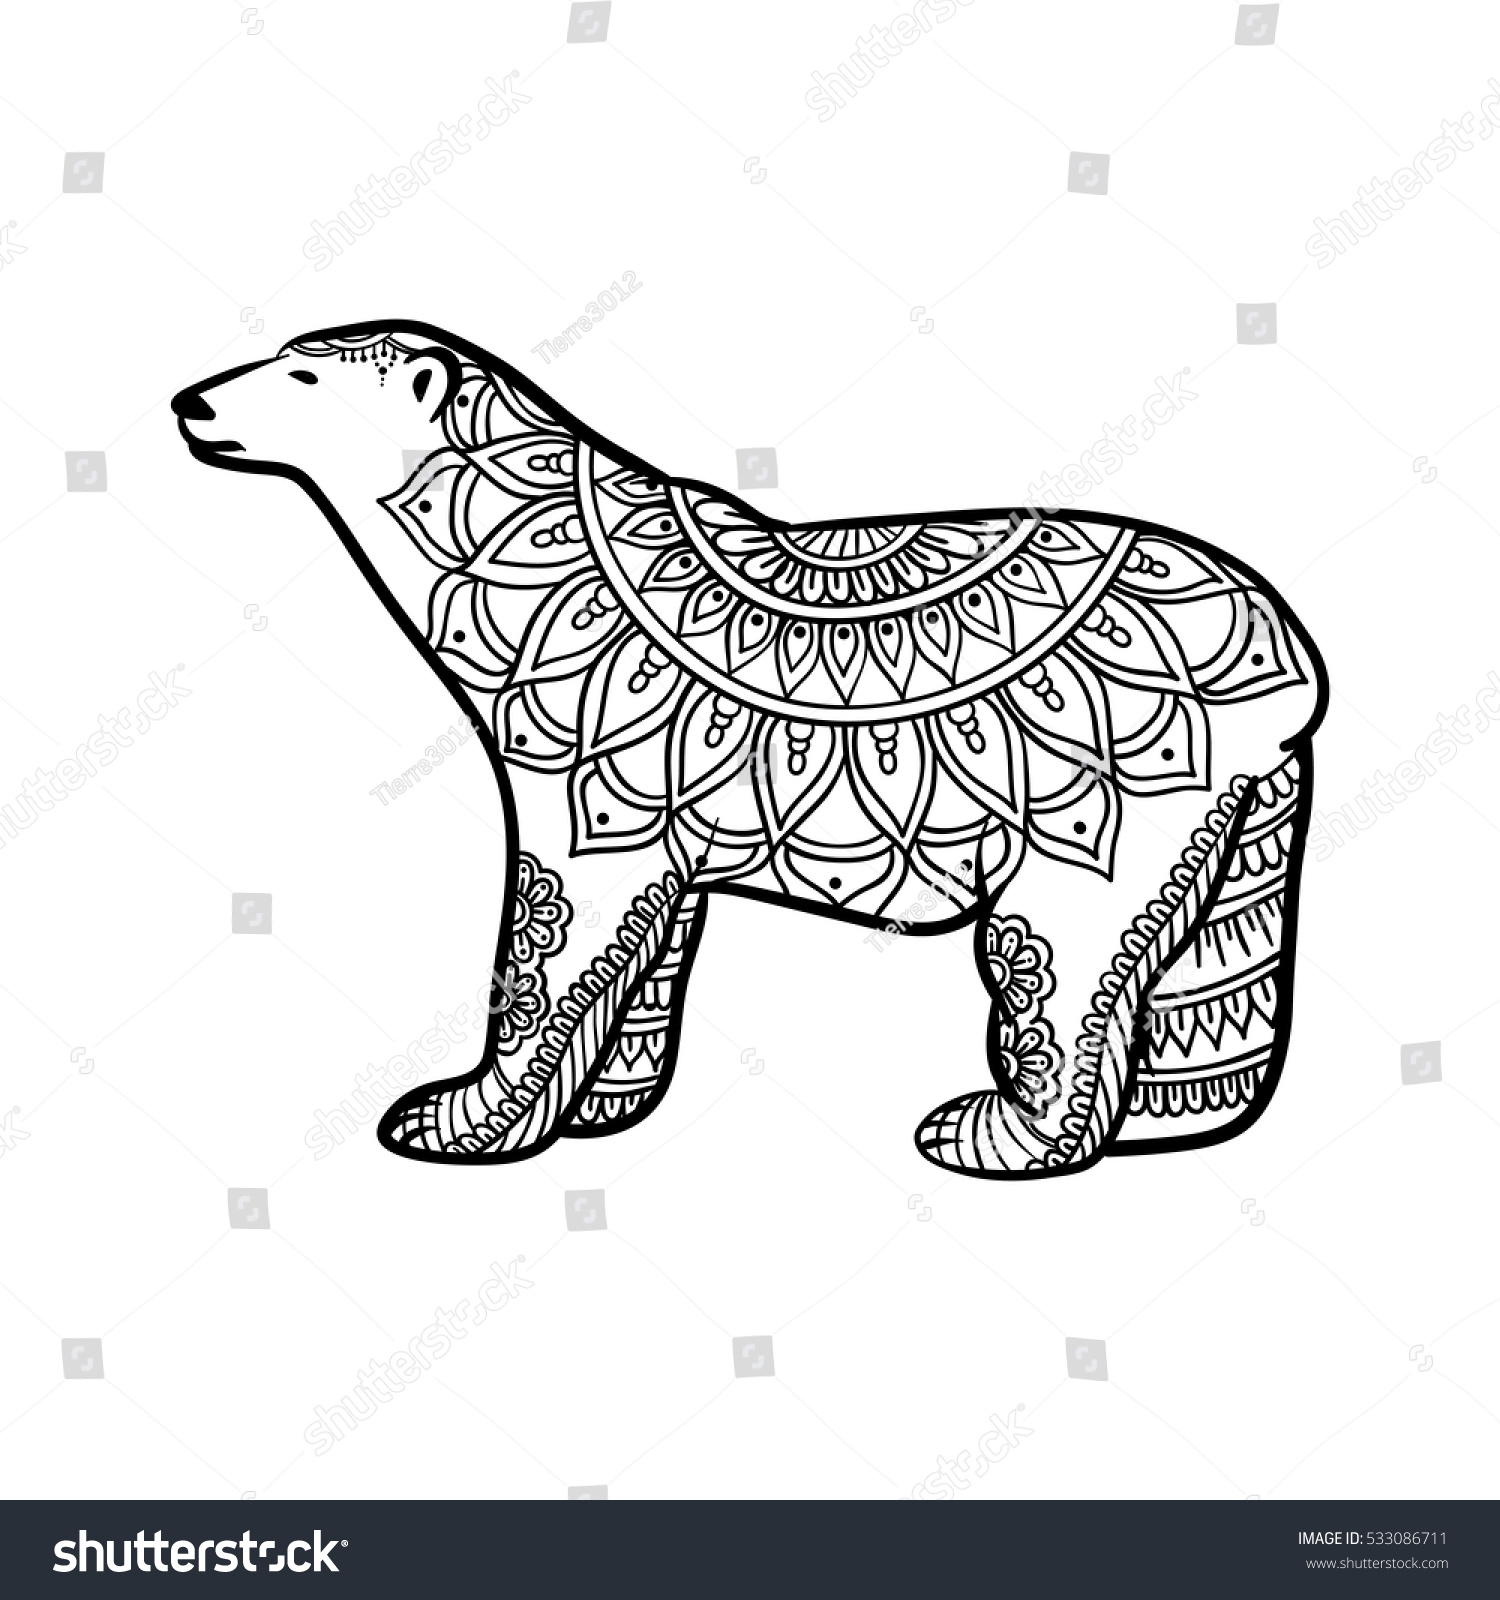 Stylized Polar Bear Illustration Zentangle Doodle Stock Vektorgrafik